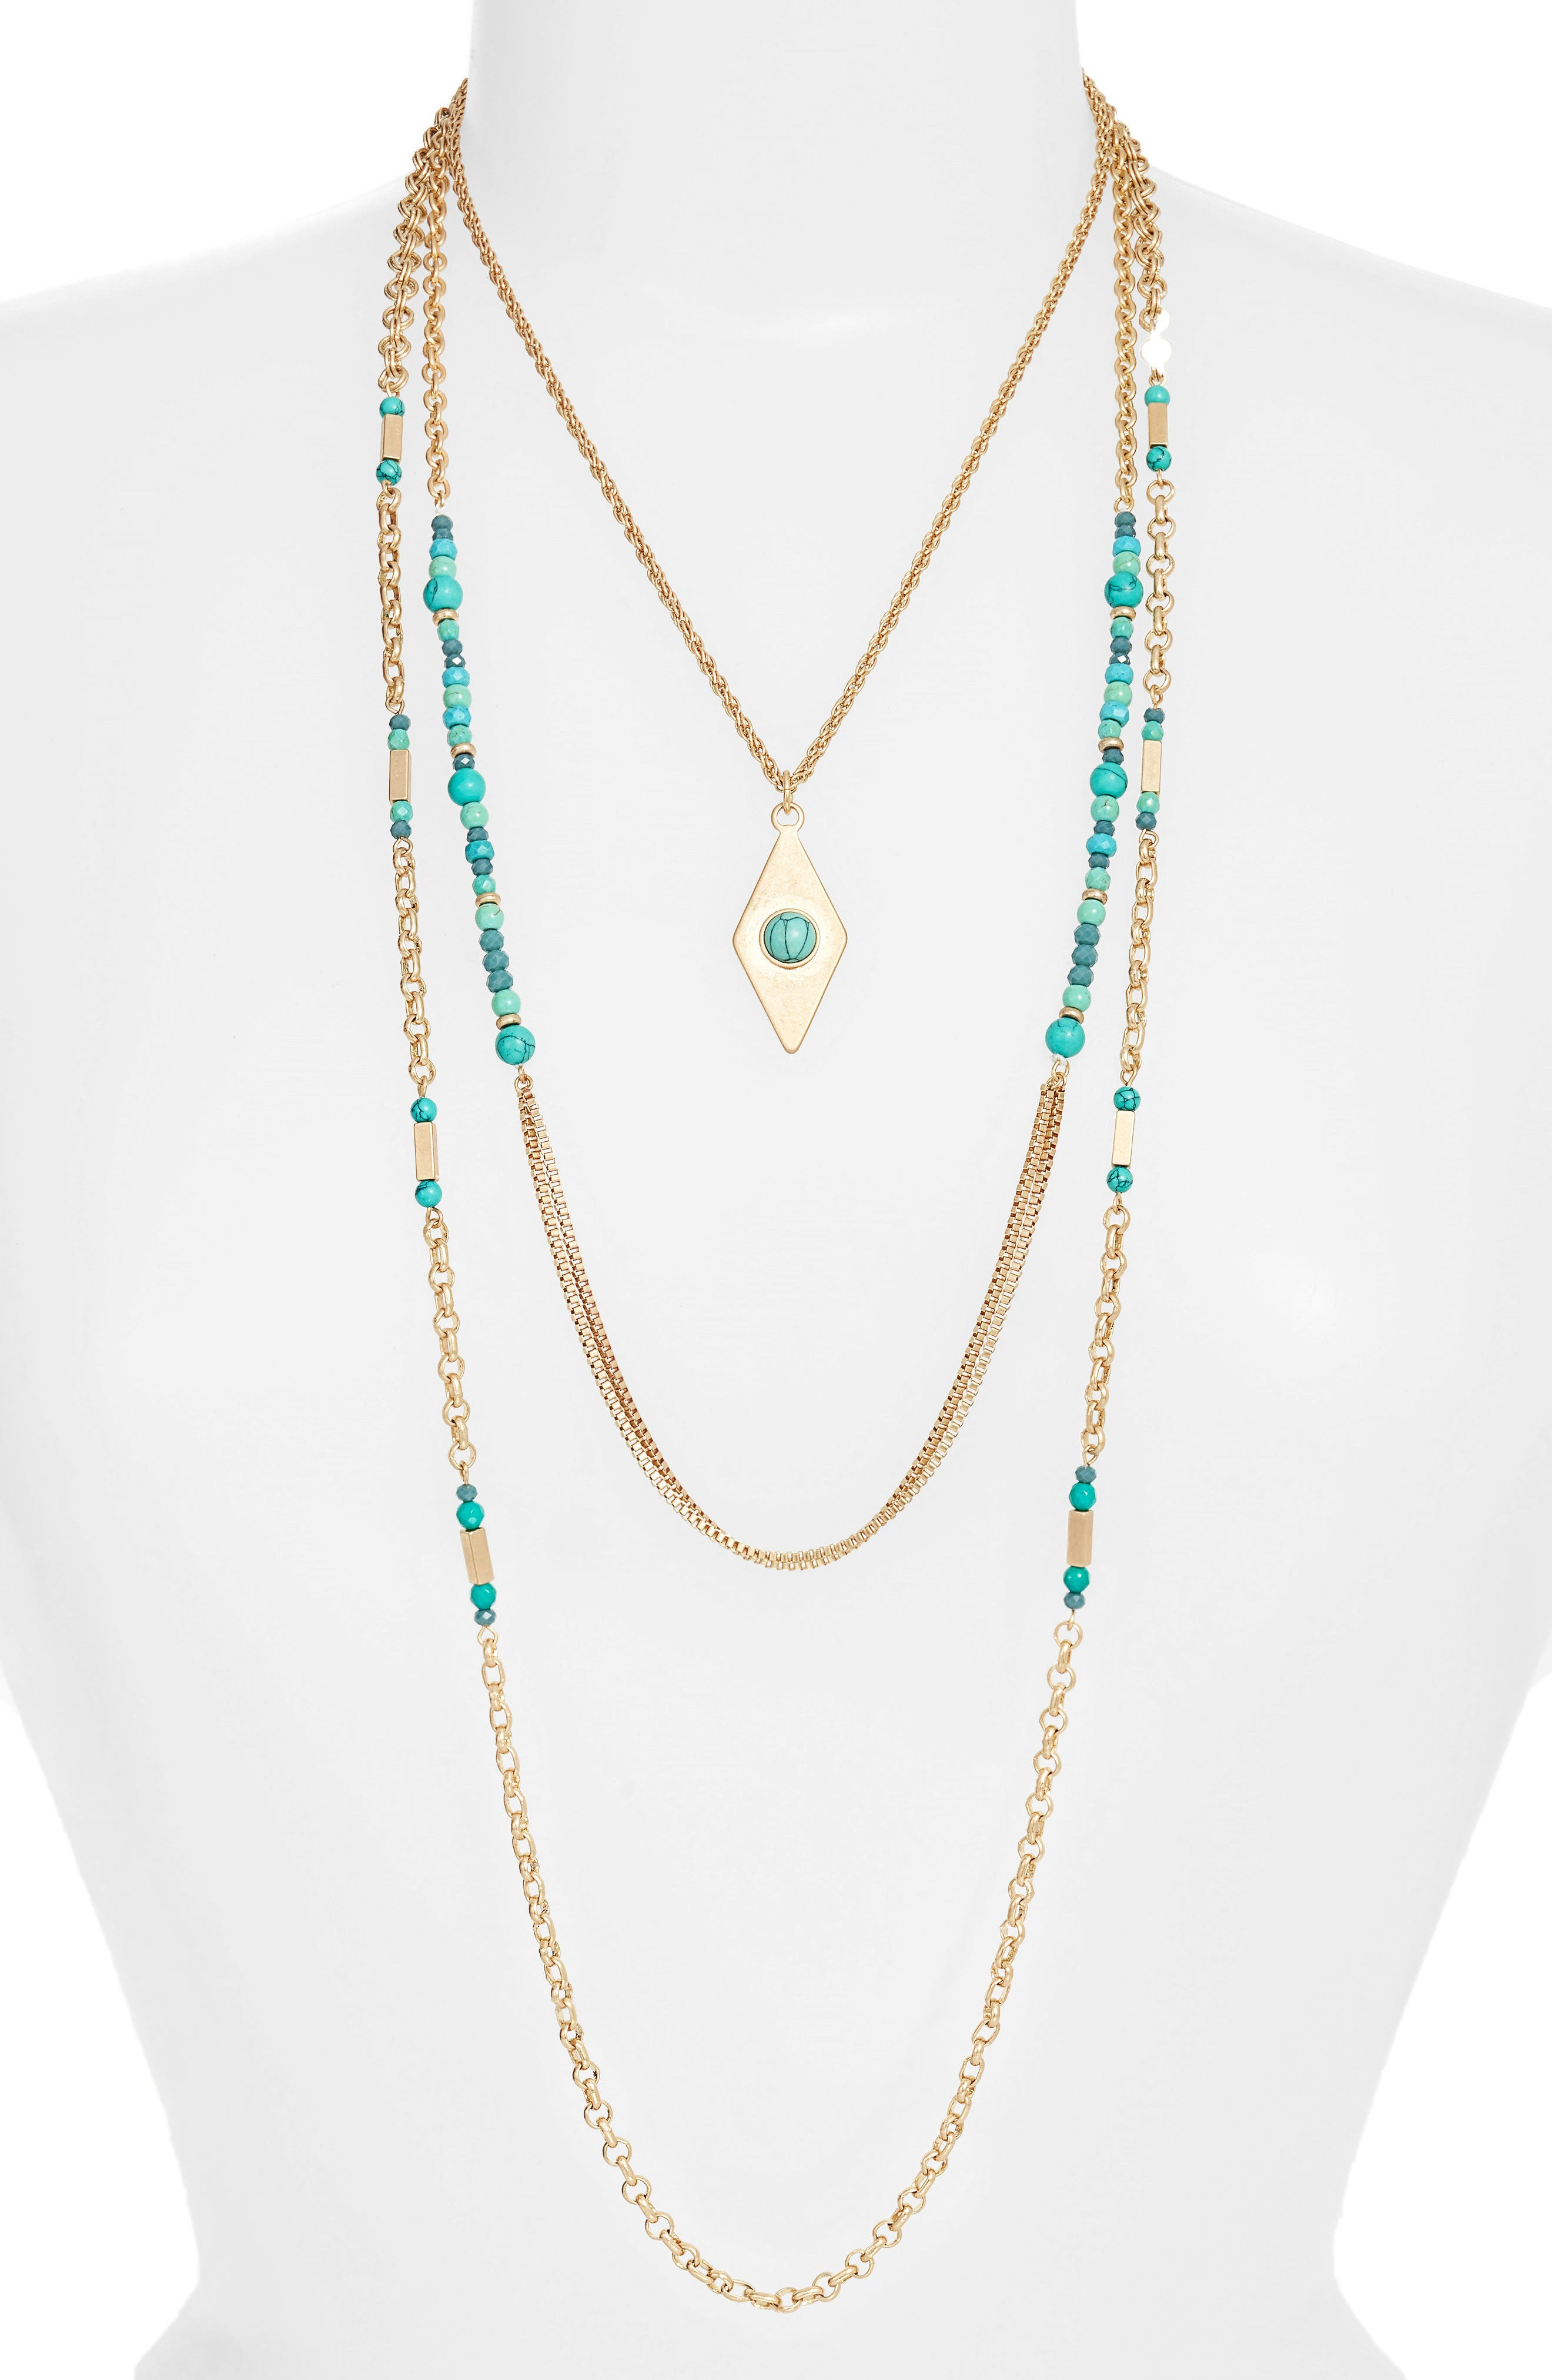 Multistrand Necklace,                         Main,                         color, Turquoise- Gold